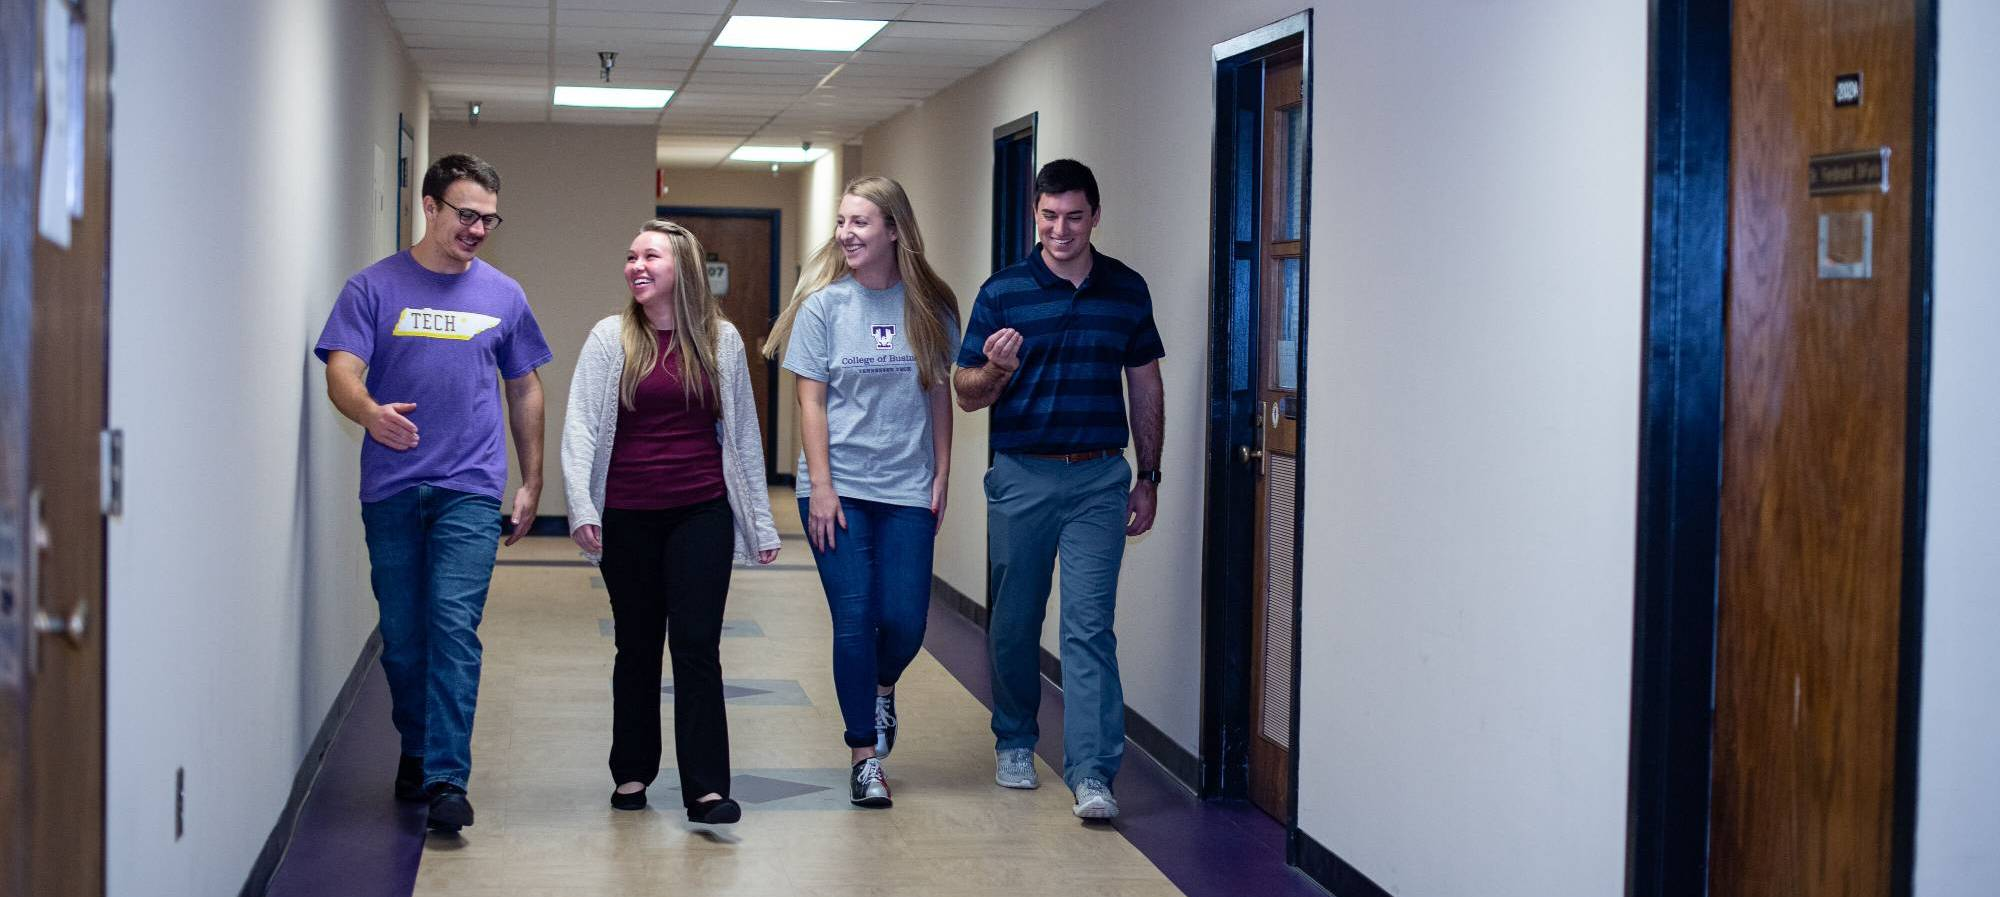 Students walking down a hall in Johnson Hall